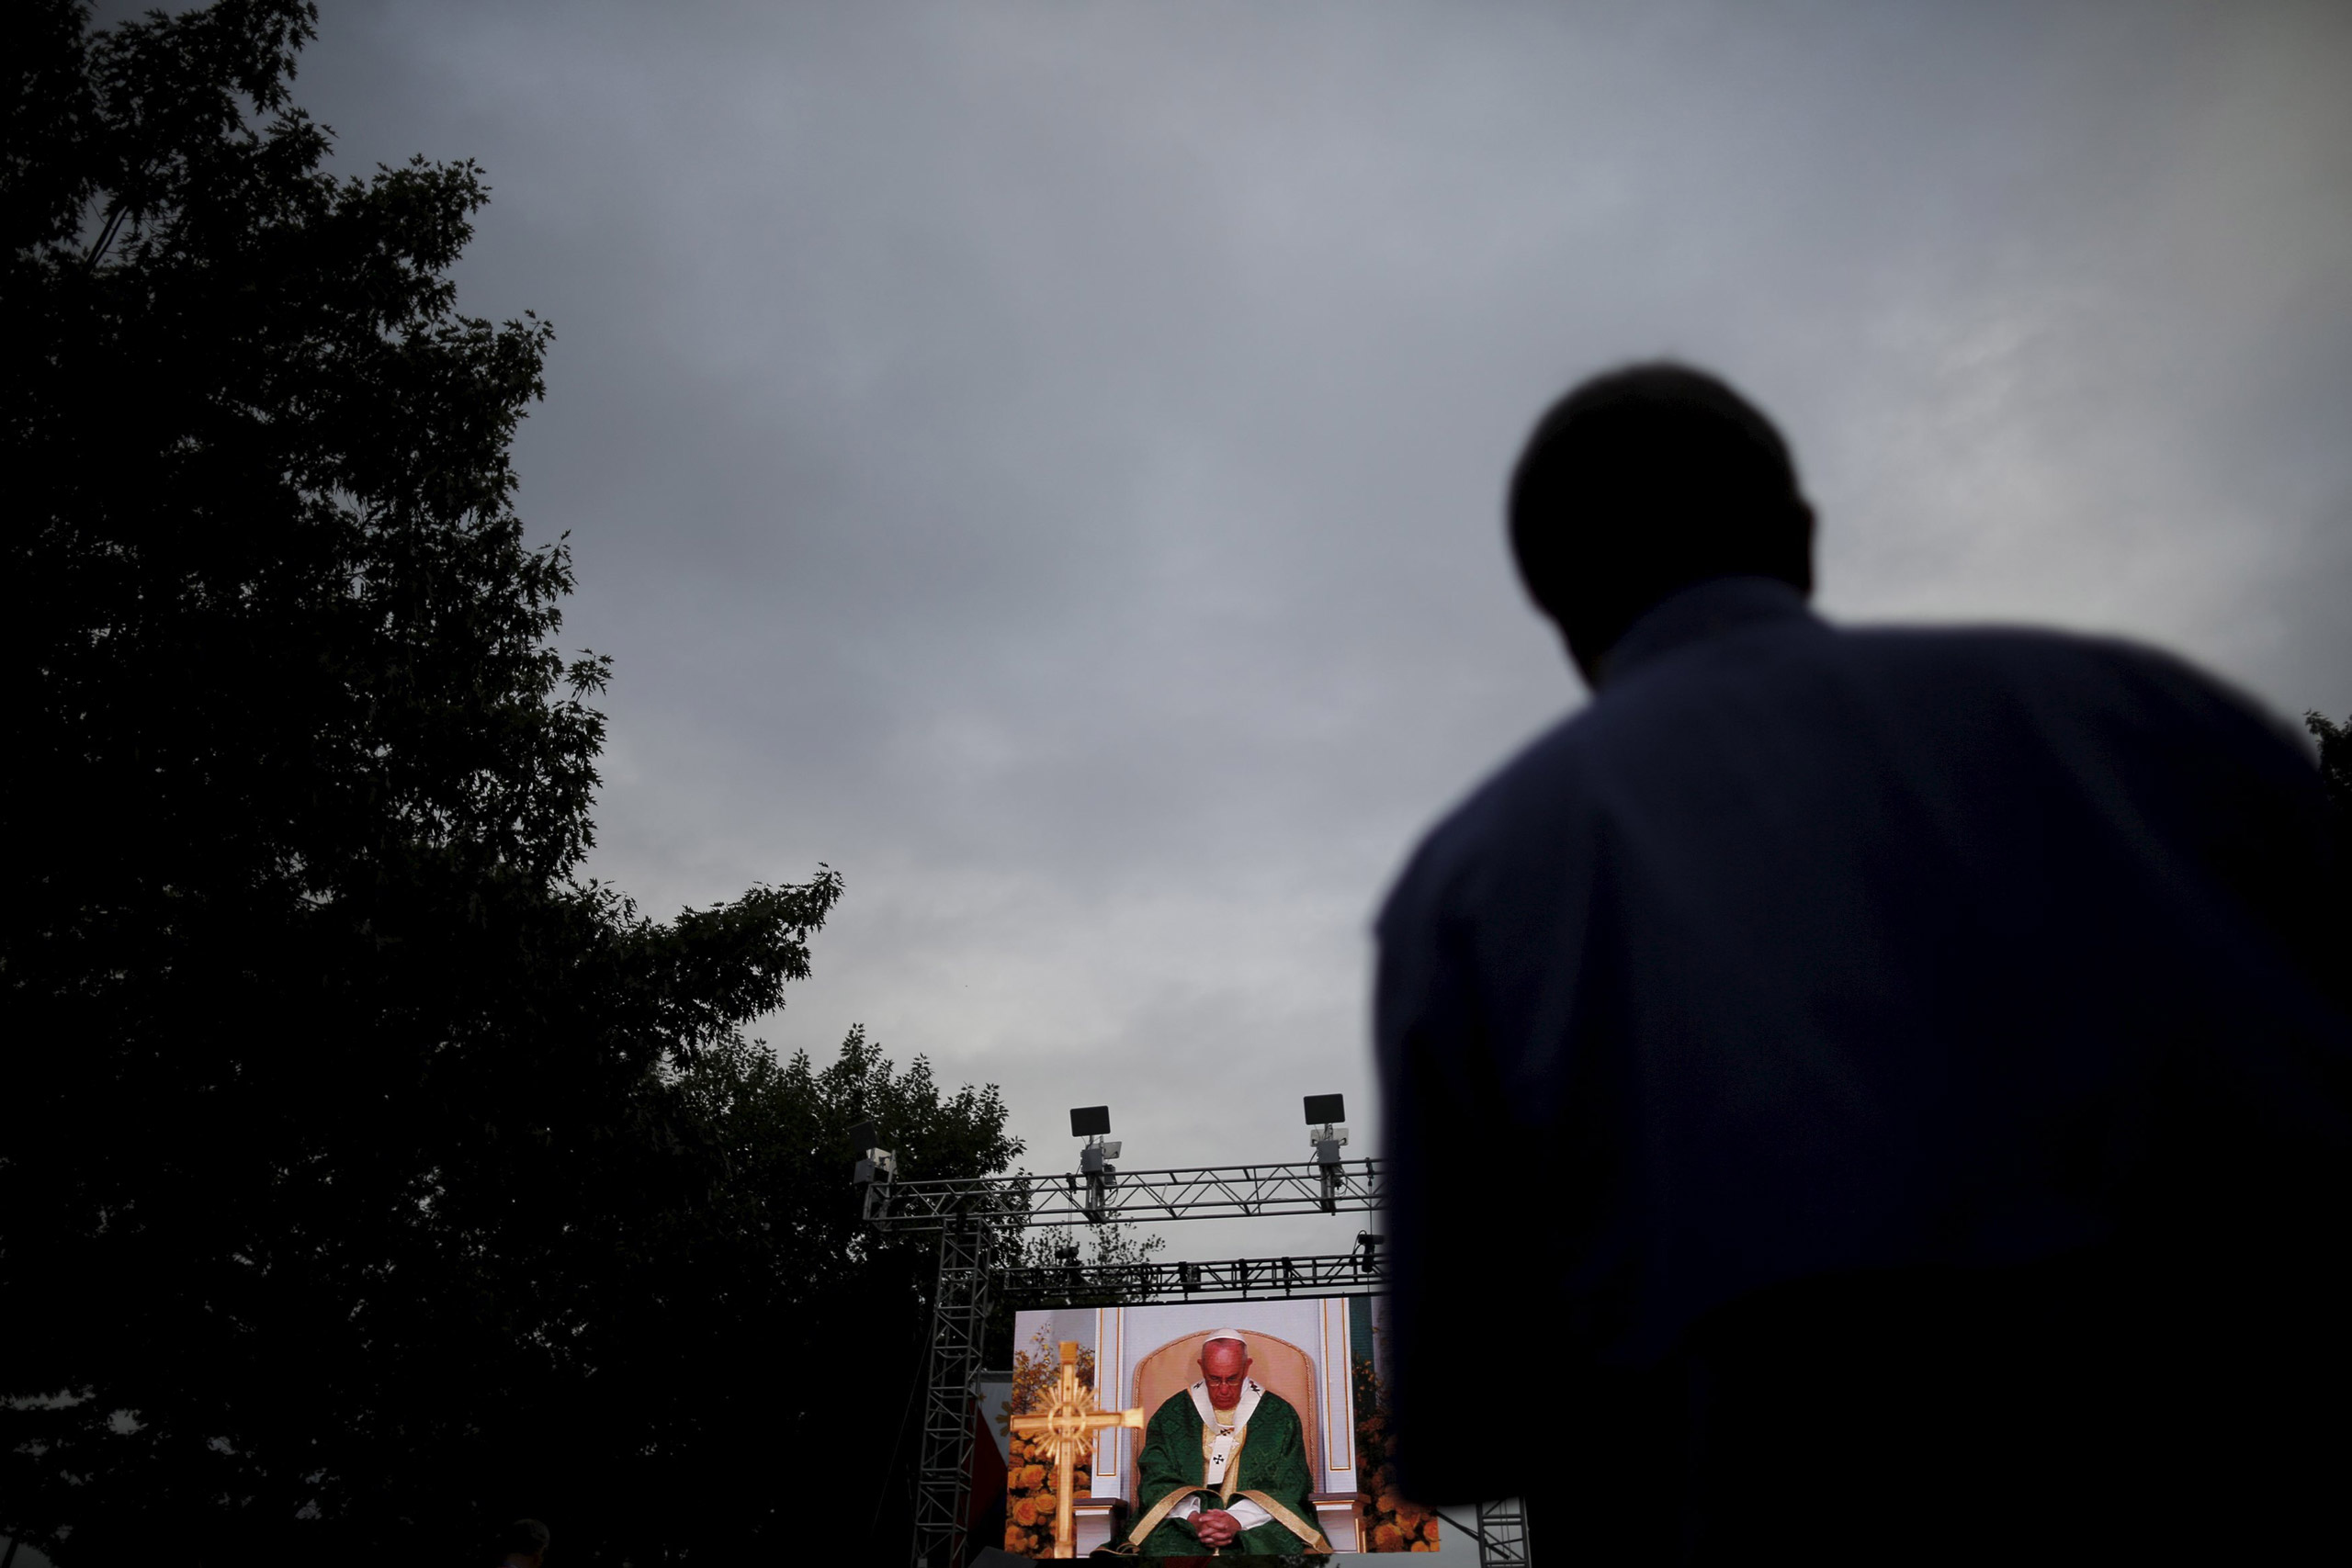 A man looks at a television screen showing Pope Francis as he celebrates the Festival of Families Sunday mass in Philadelphia on Sept. 27, 2015.